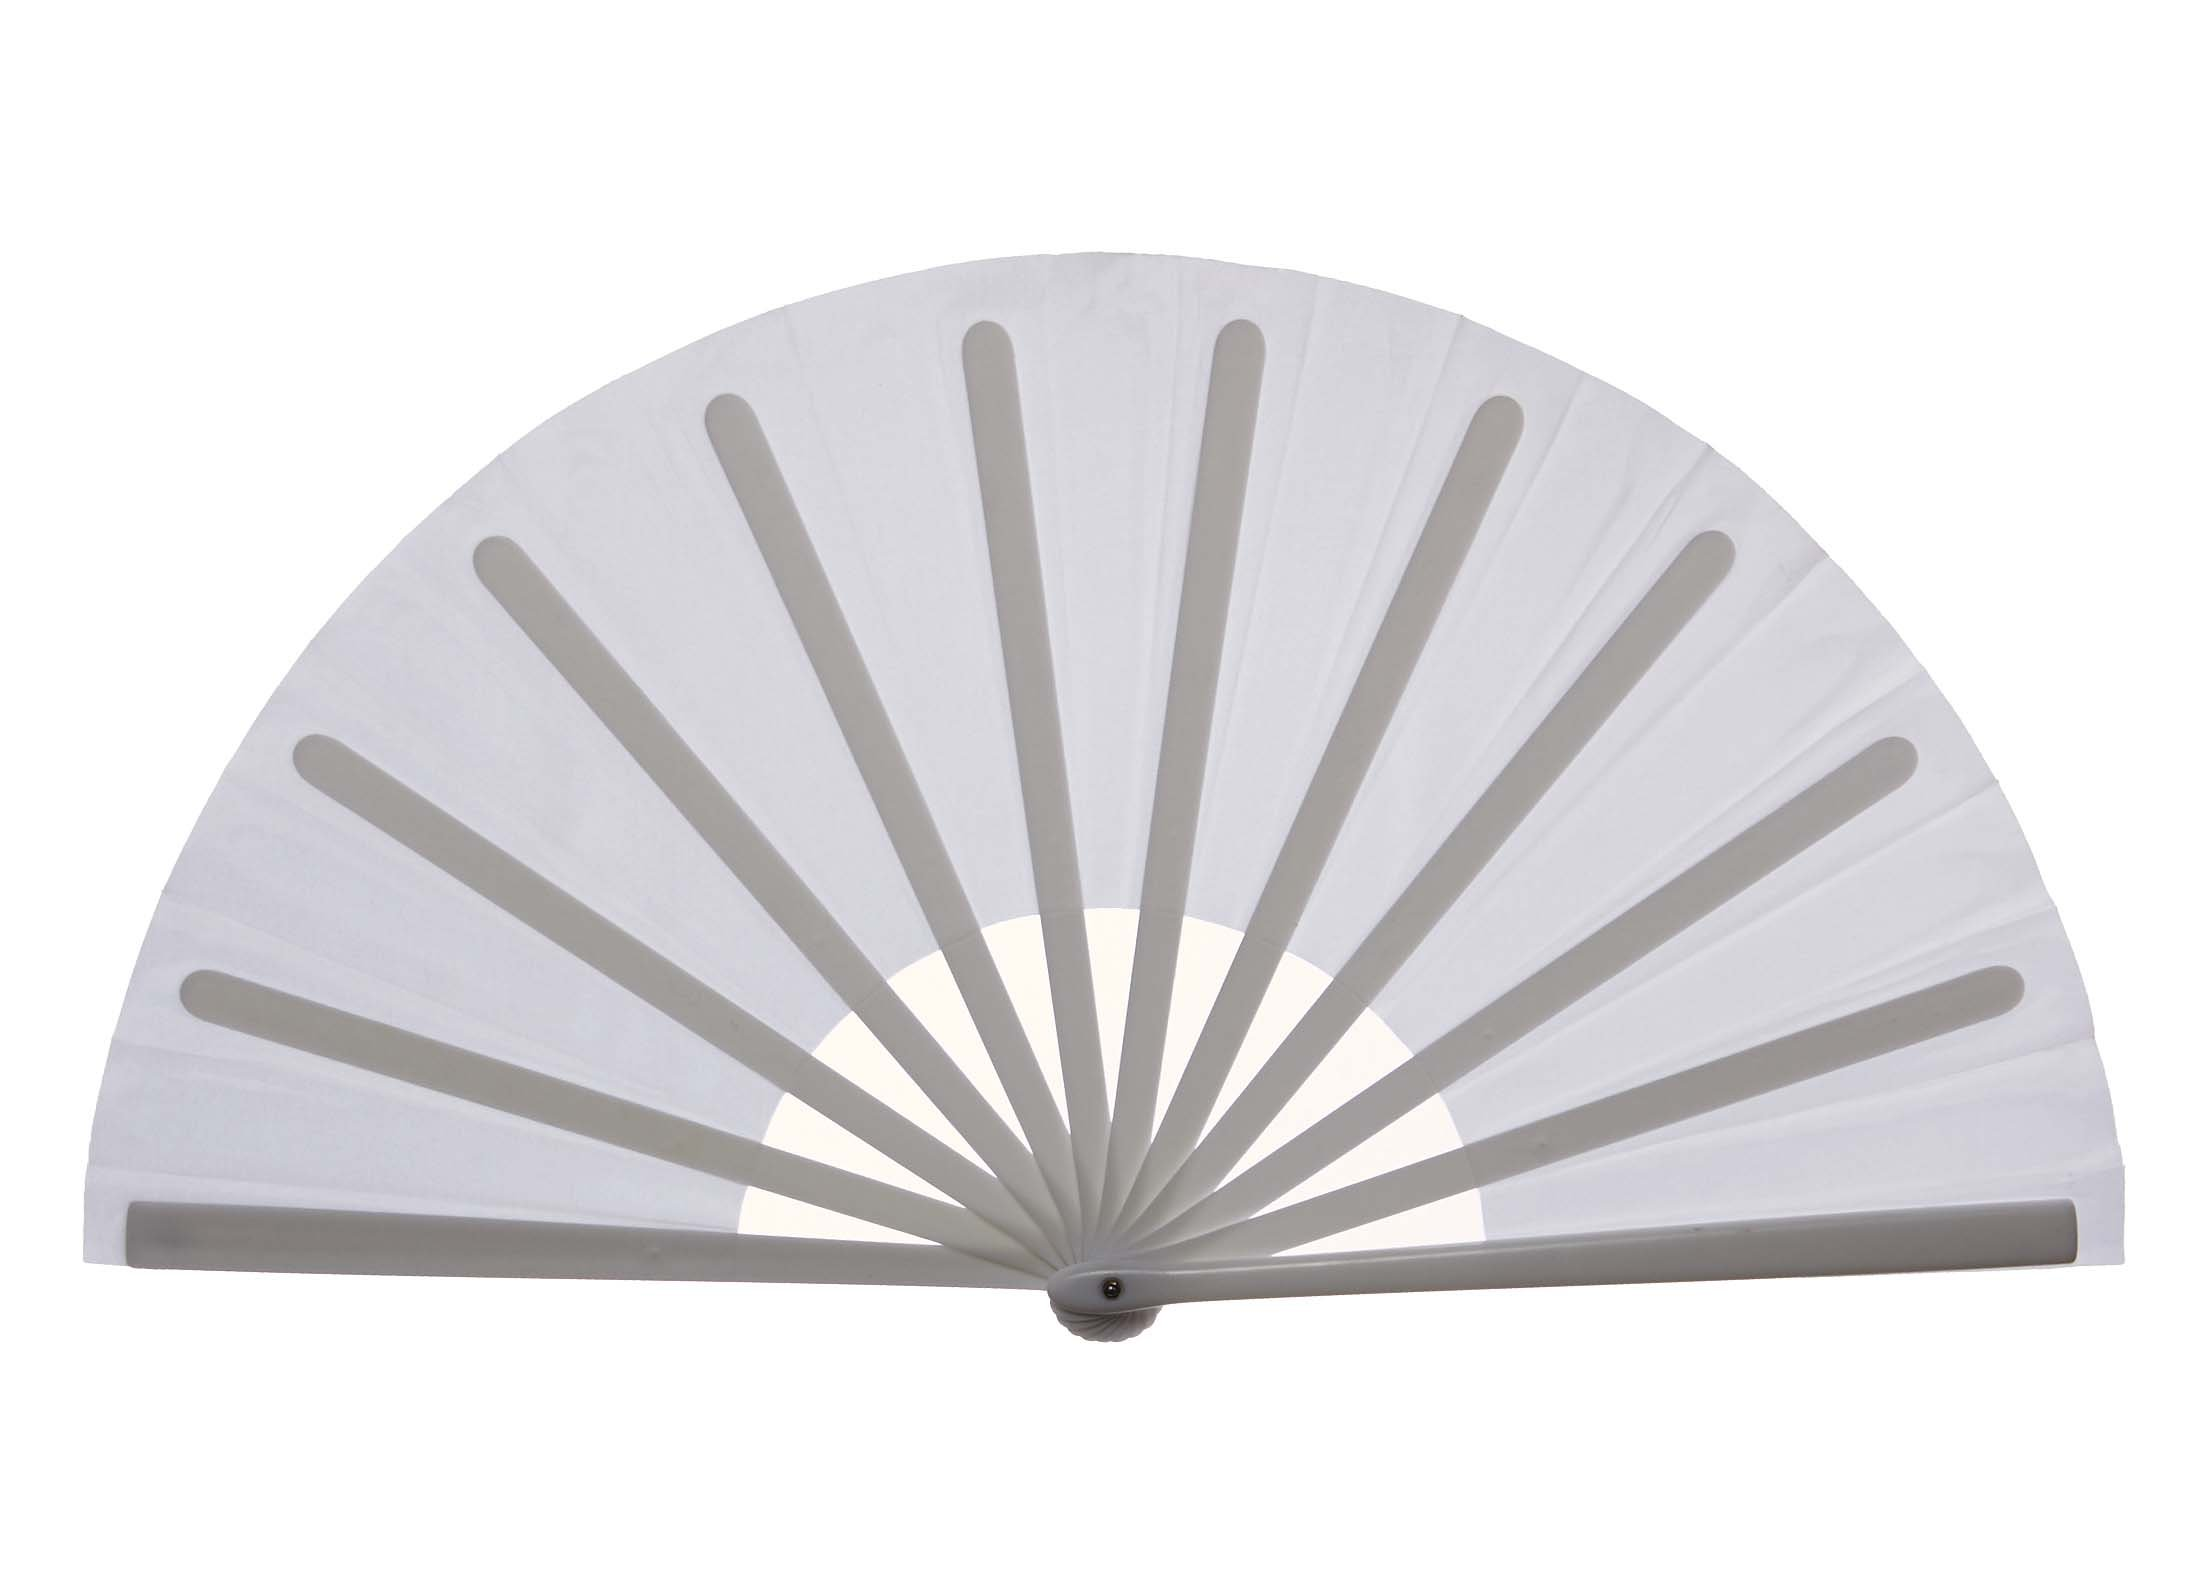 Chinese Nylon-Cloth Fan for Ladies, White